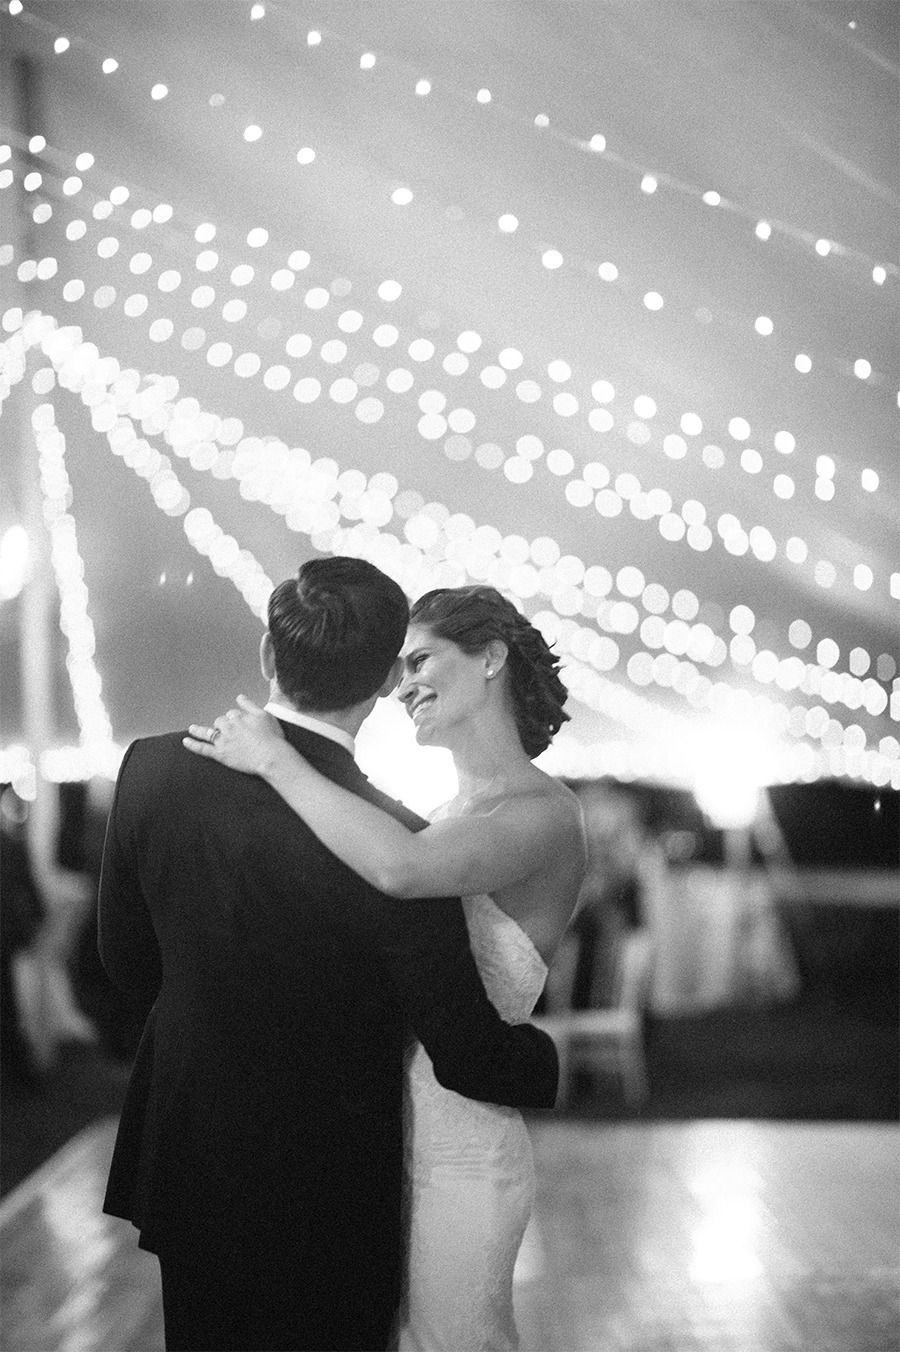 love love love tented weddings with lots and lots of draped lighting... see the wedding on smp: http://www.StyleMePretty.com/2014/02/04/elegant-newport-estate-wedding/ Jenny Moloney Photography